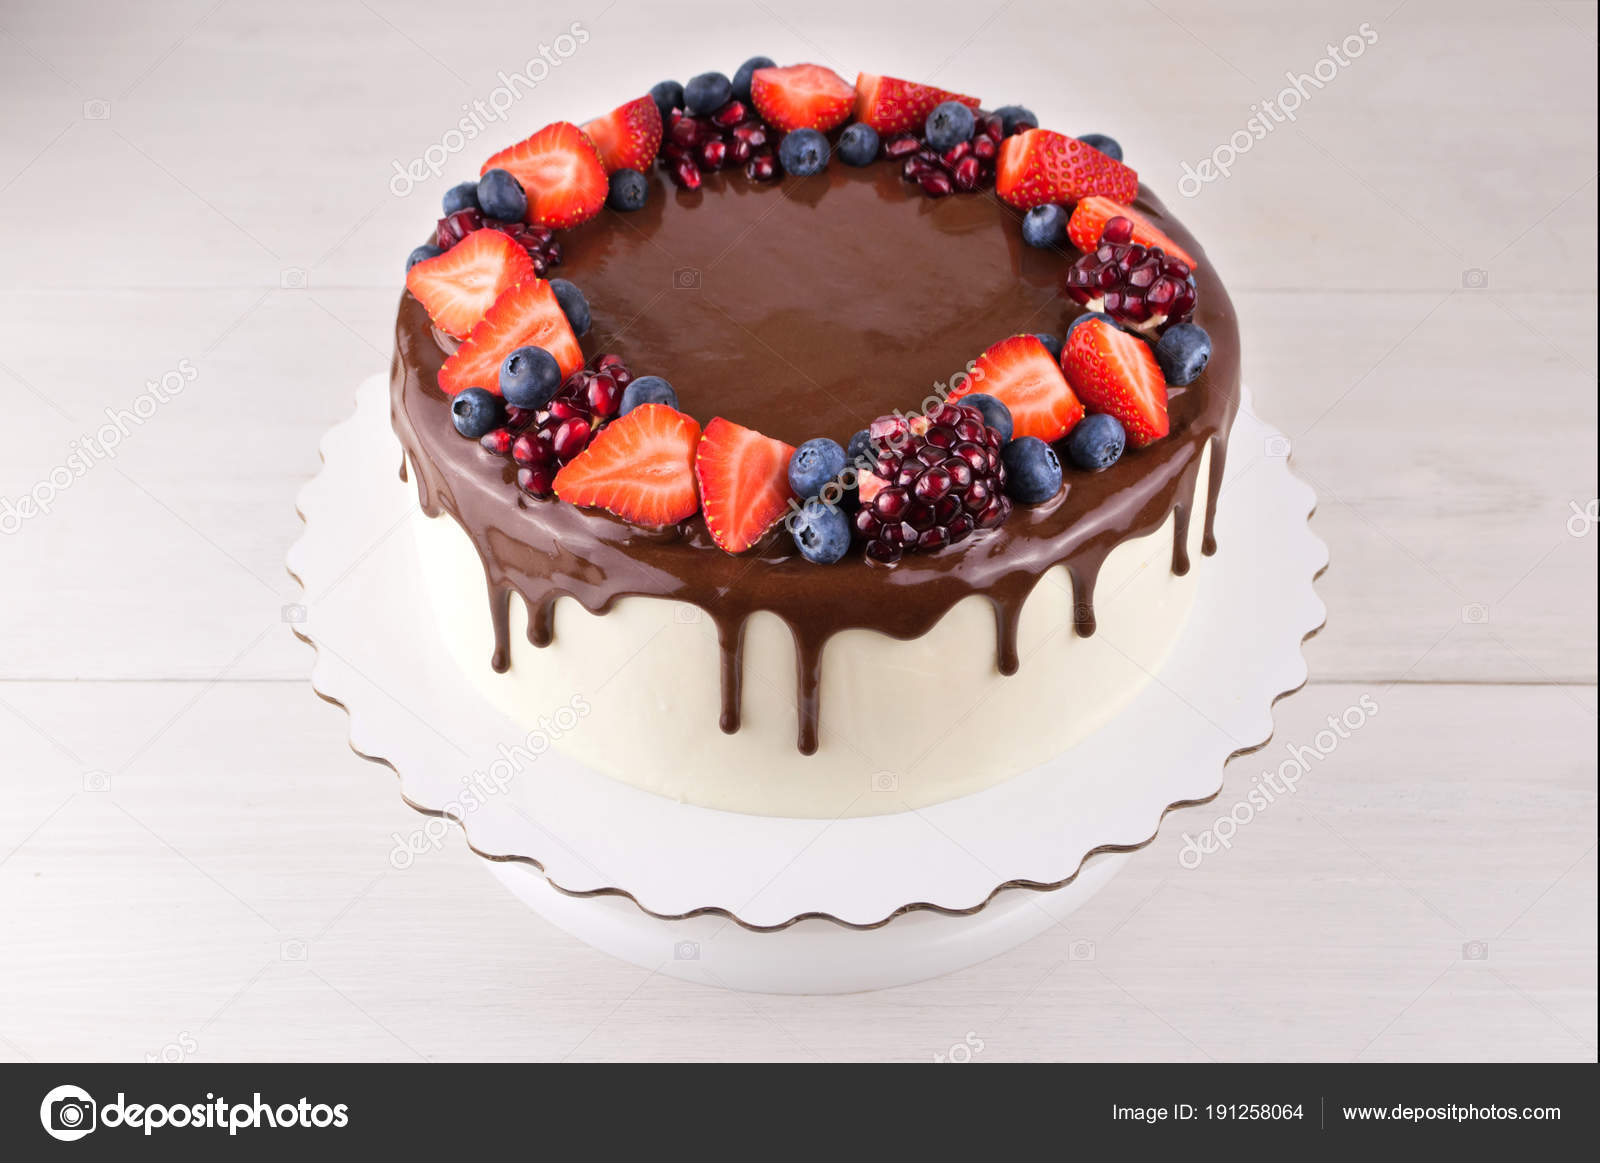 Birthday Cake Chocolate Strawberries Blueberries Garnet White Wooden Table Picture Stock Photo